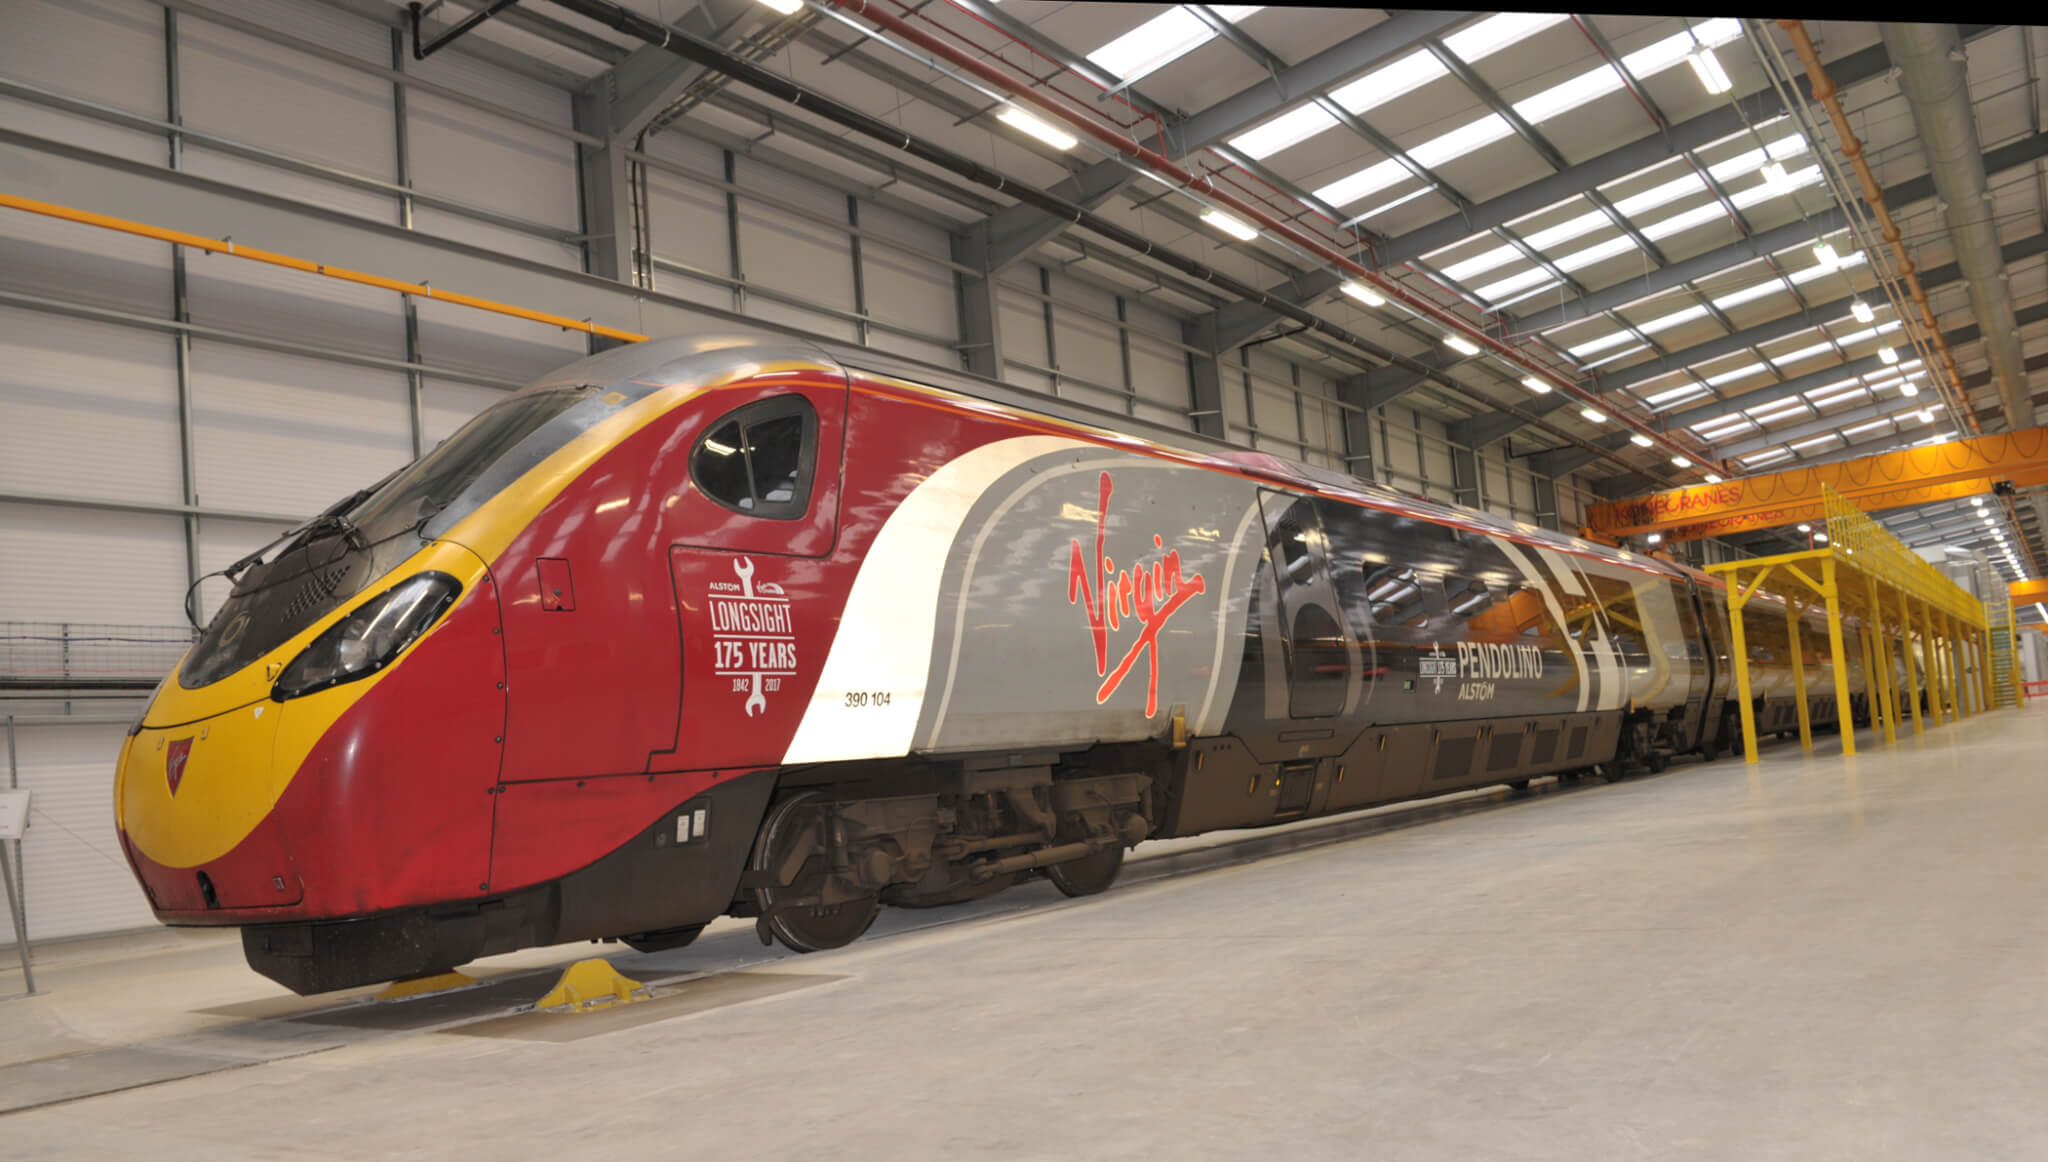 The Pendolino train has already arrived at Alstom's rolling stock modernisation centre